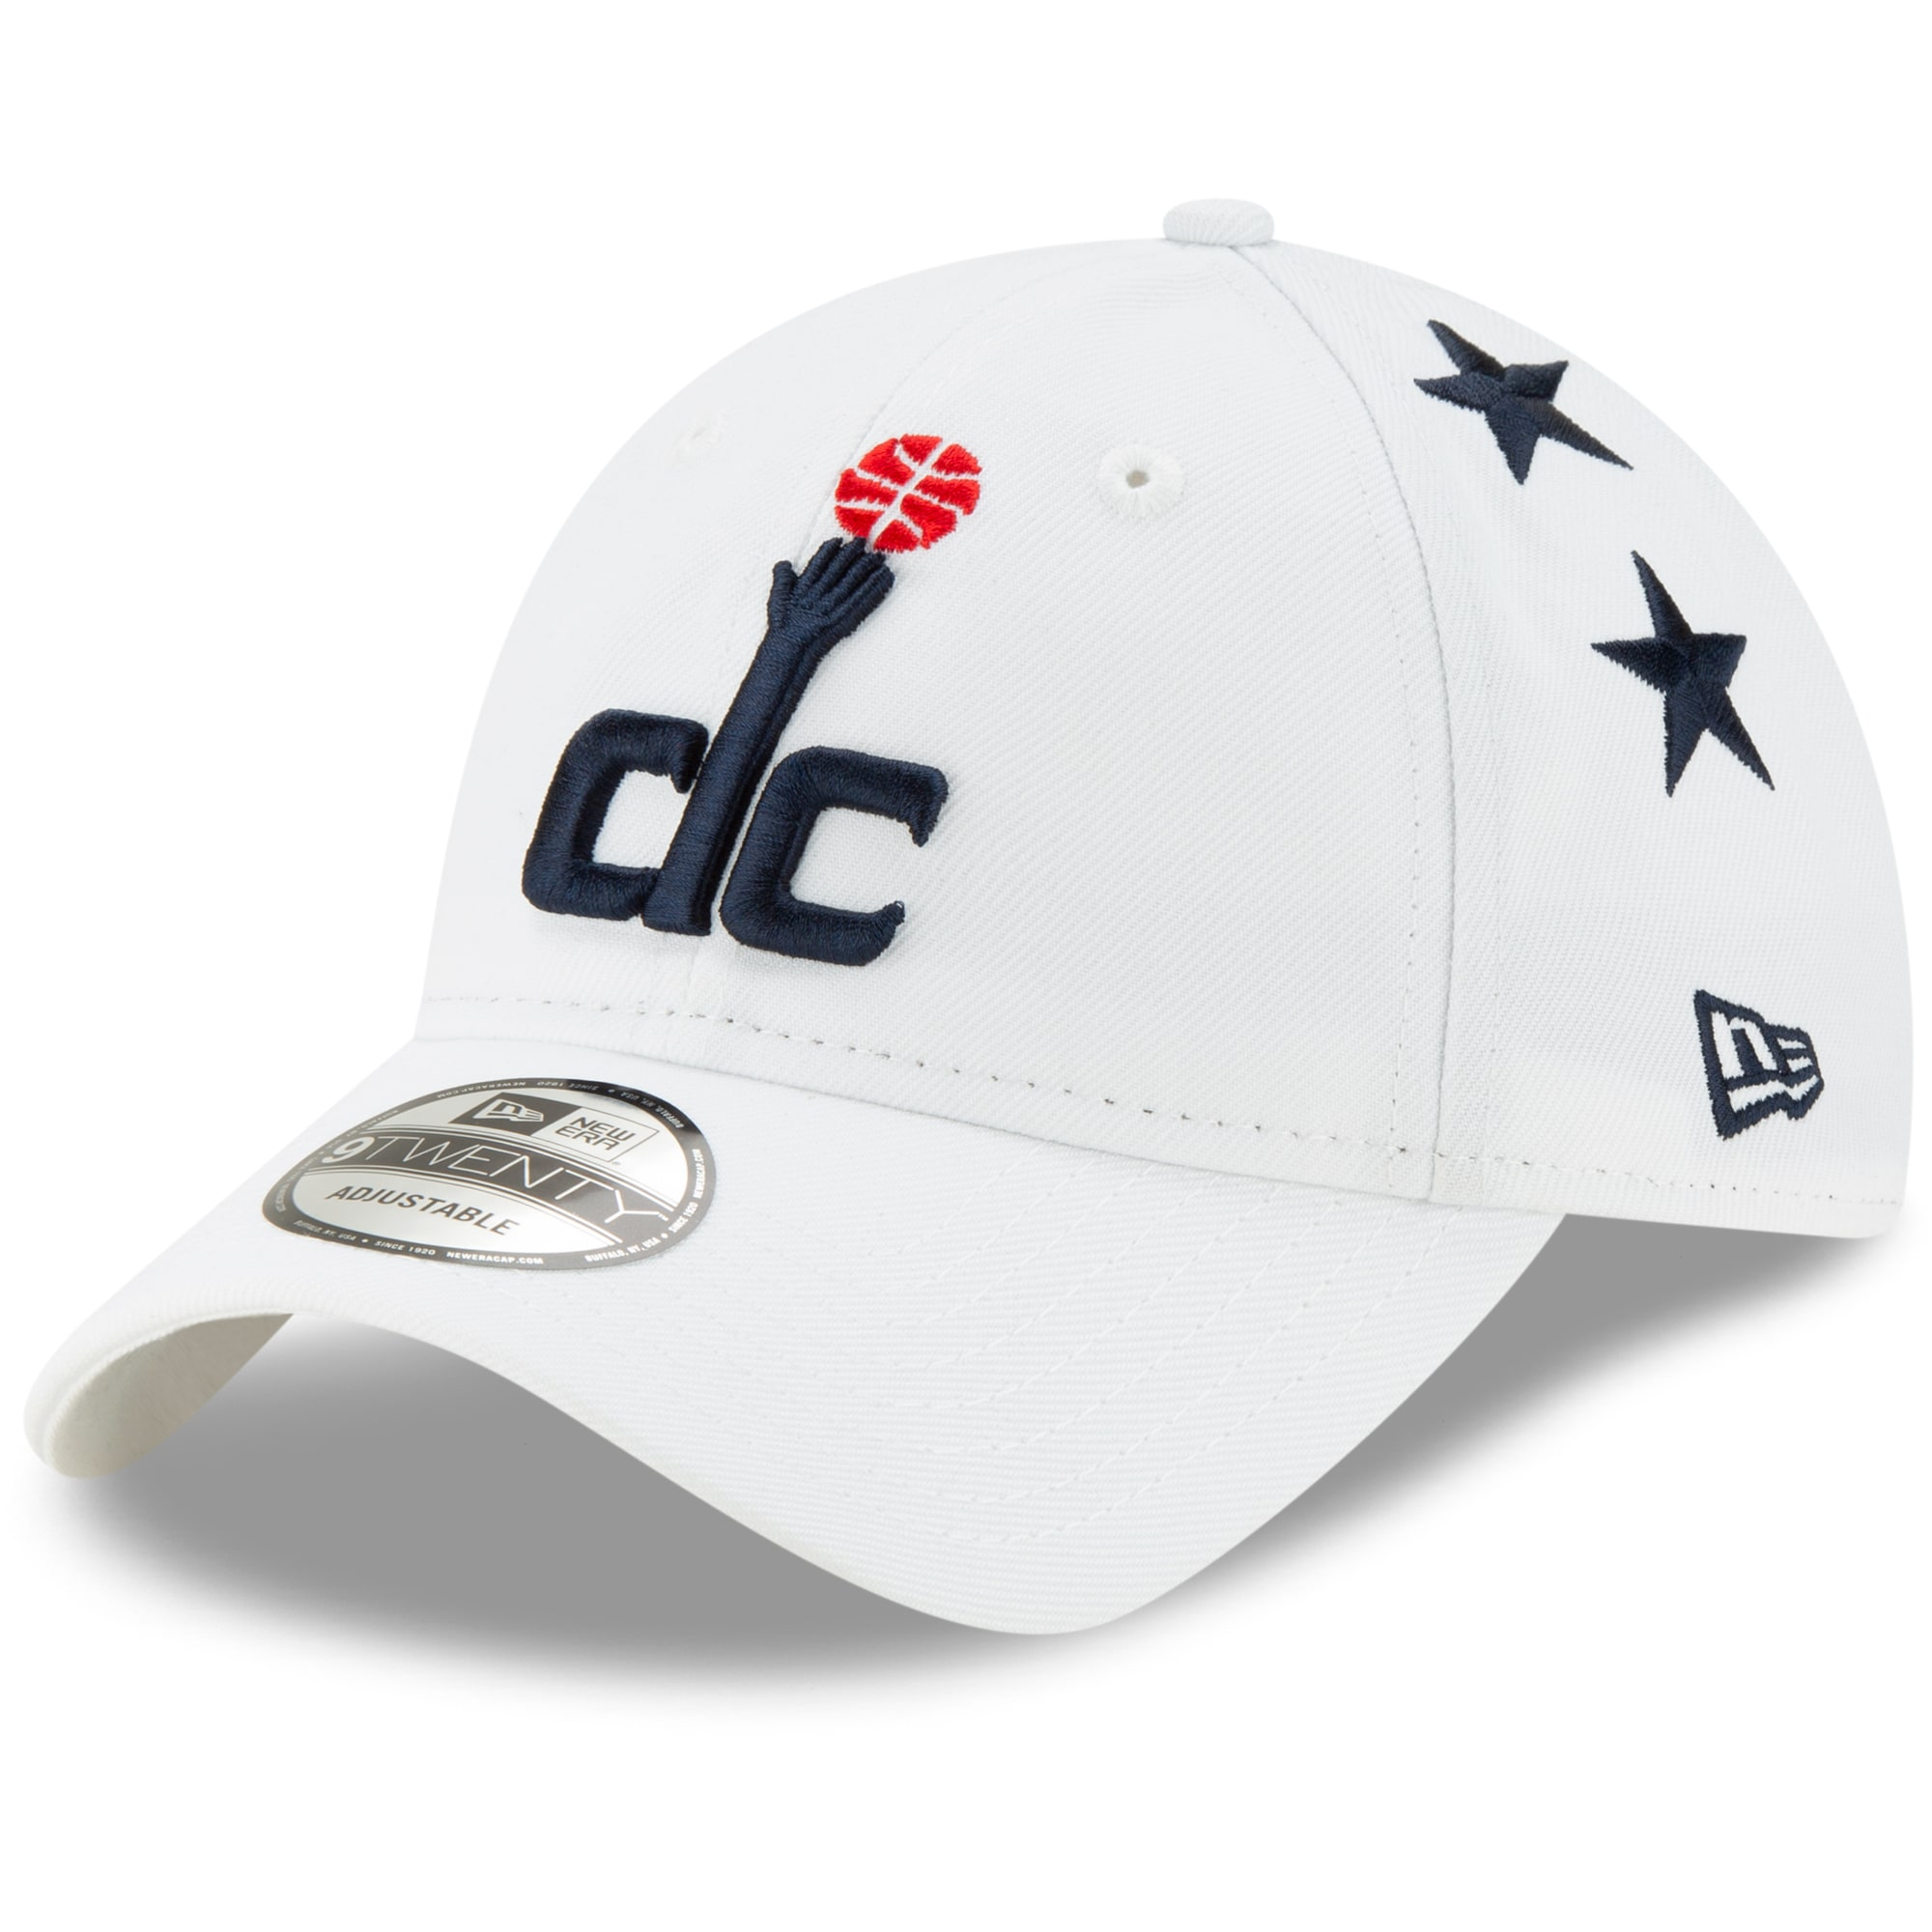 Washington Wizards New Era 2019/20 City Edition 9TWENTY Adjustable Hat - White